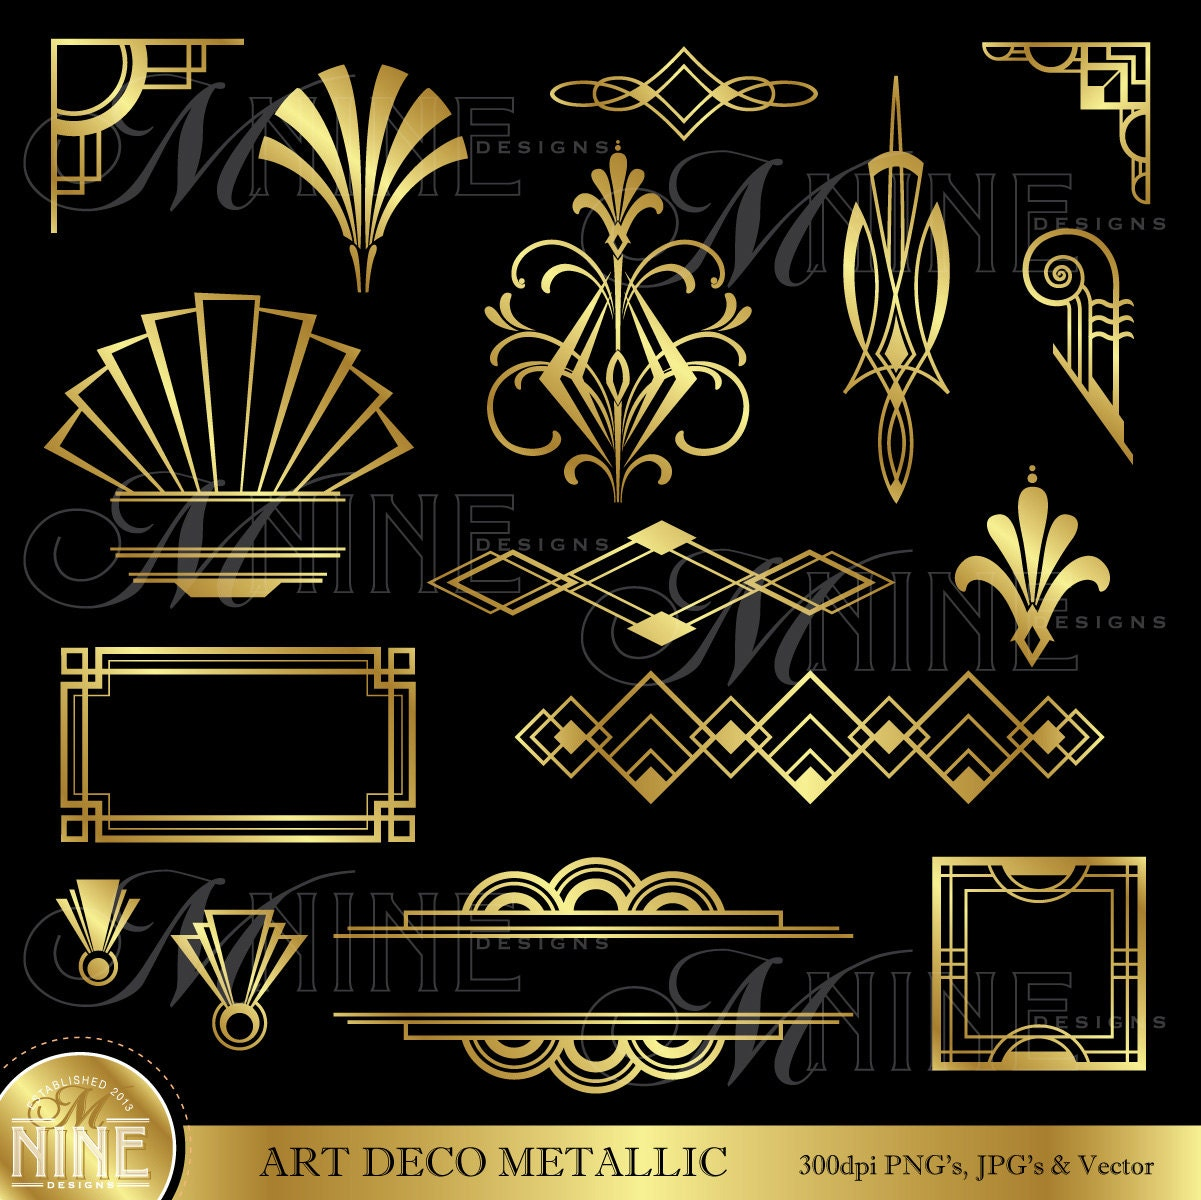 Art Deco Graphic Design Elements Art Deco Clip Art Gold Art Deco